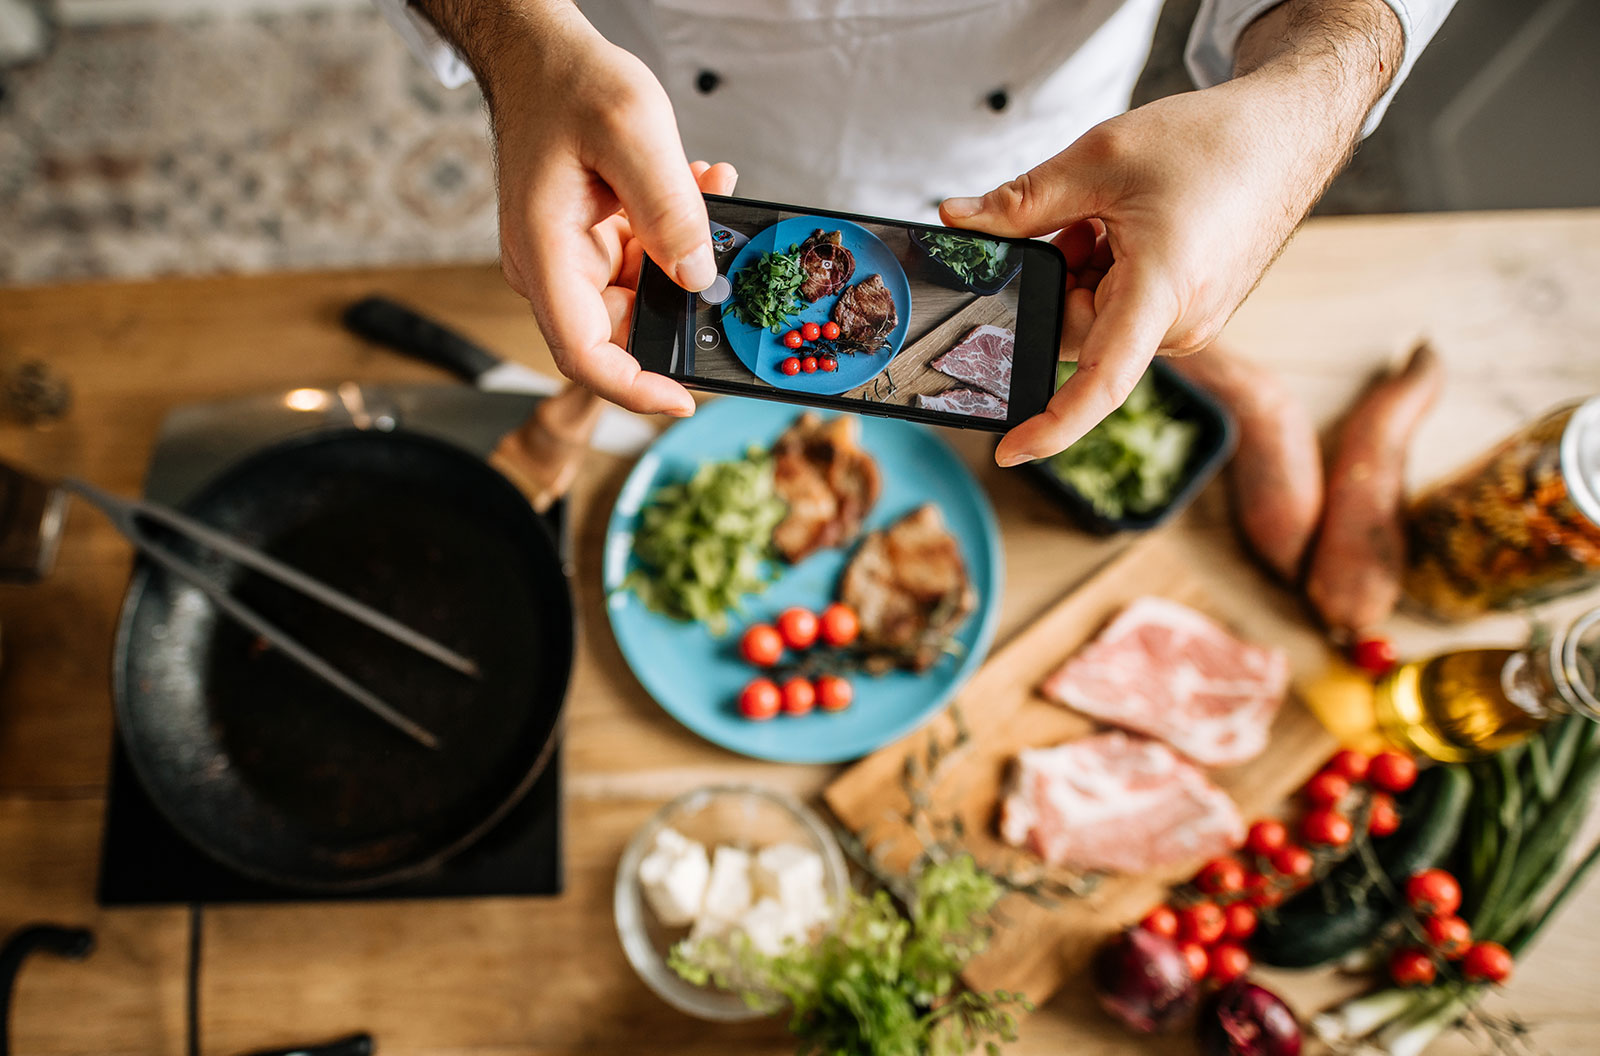 Blogger taking photo of cooked meal on the table with his phone